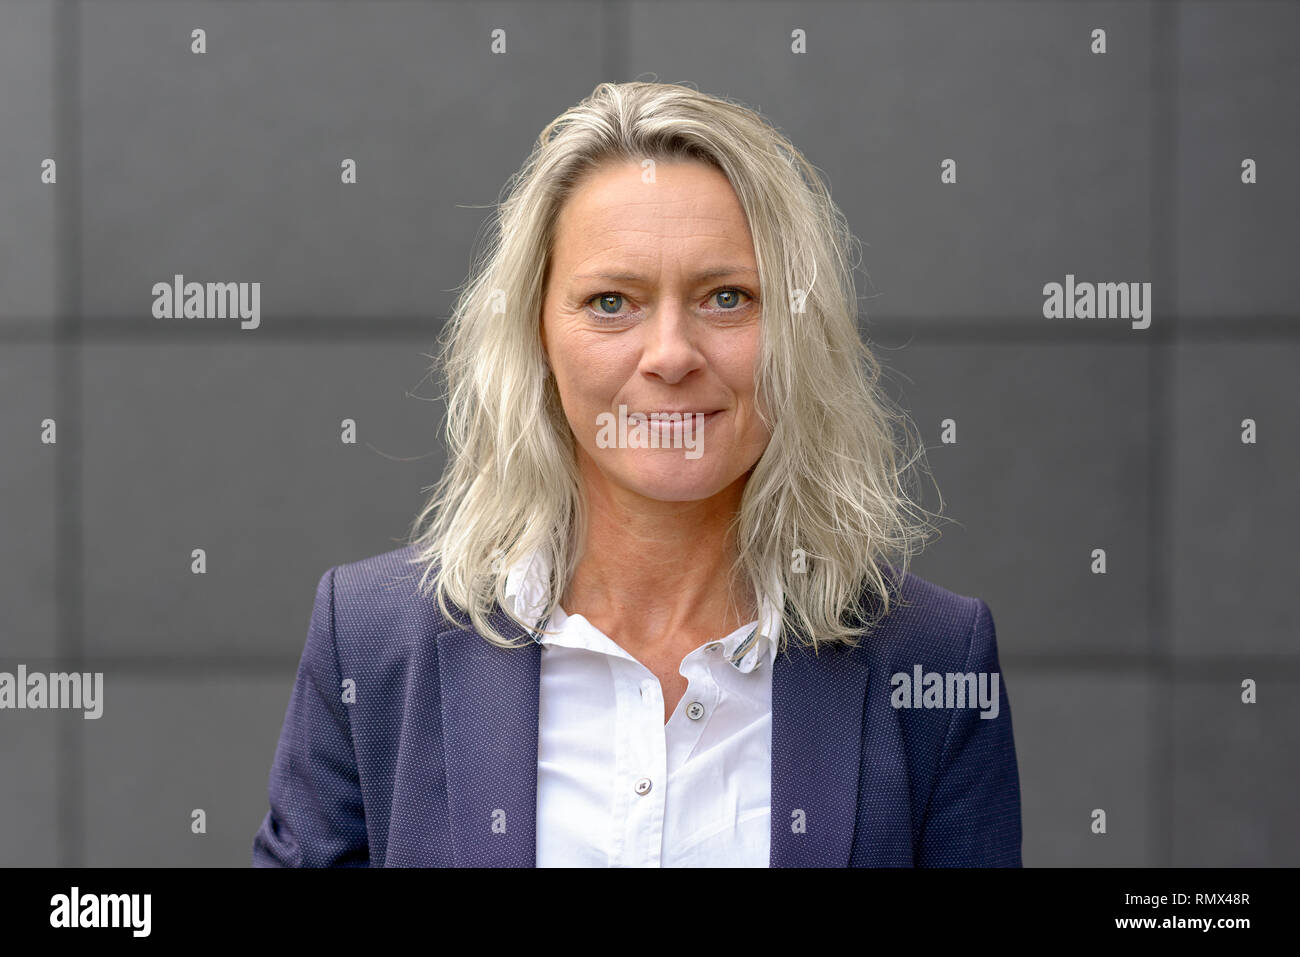 Mature attractive grey woman with tousled shoulder length hair looking intently at the camera with a quiet smile in front of a grey wall - Stock Image